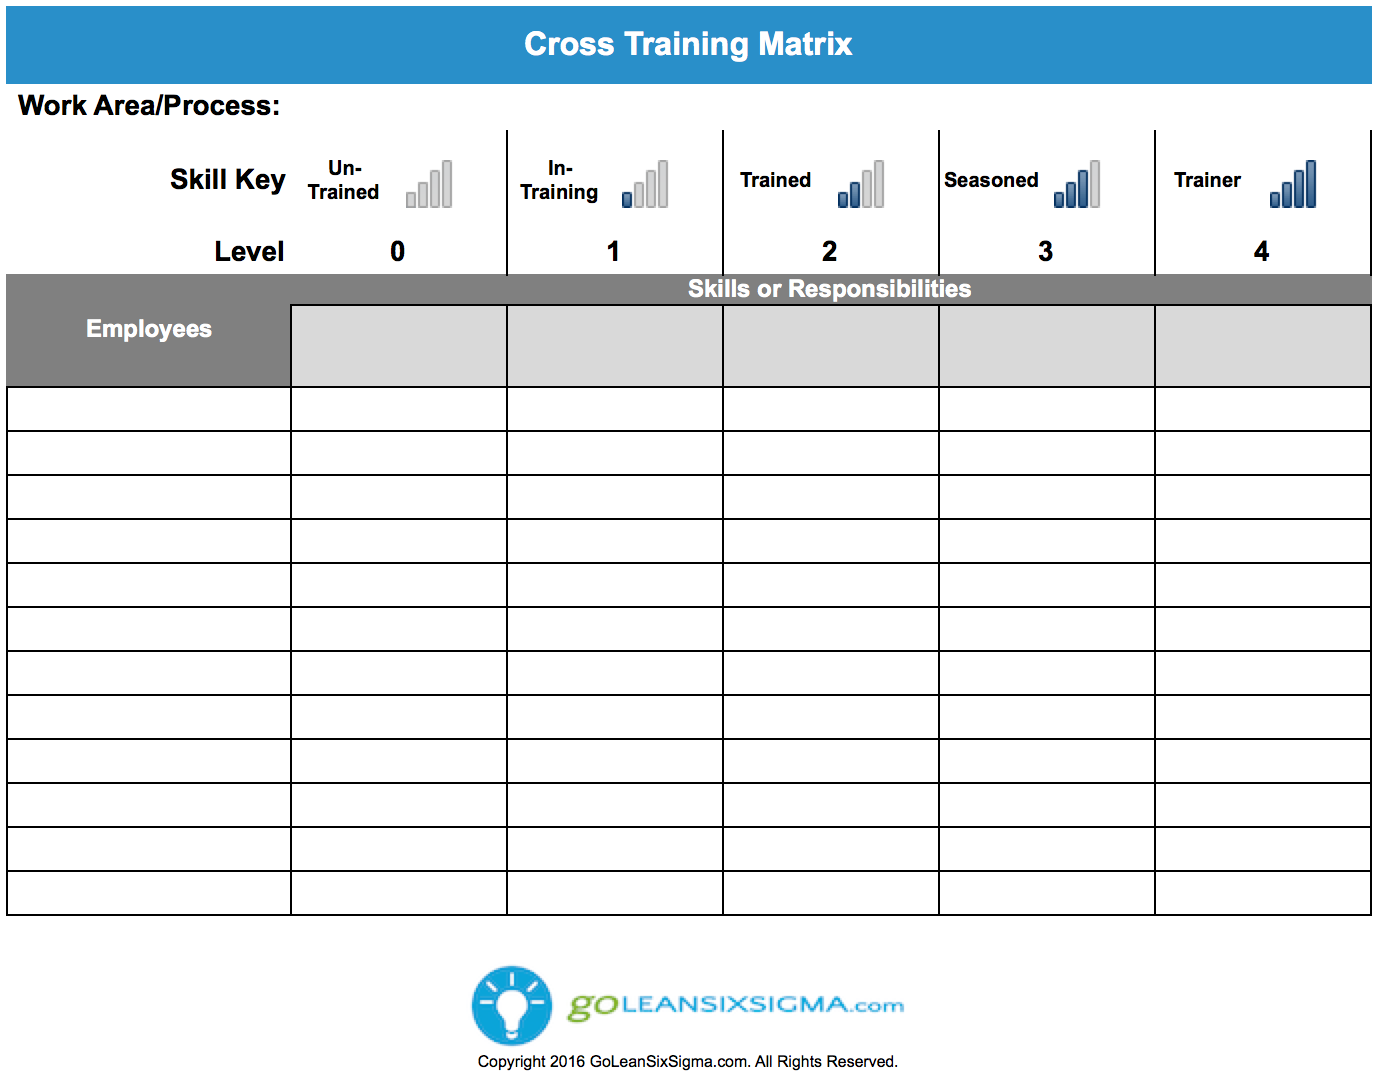 Cross Training Matrix